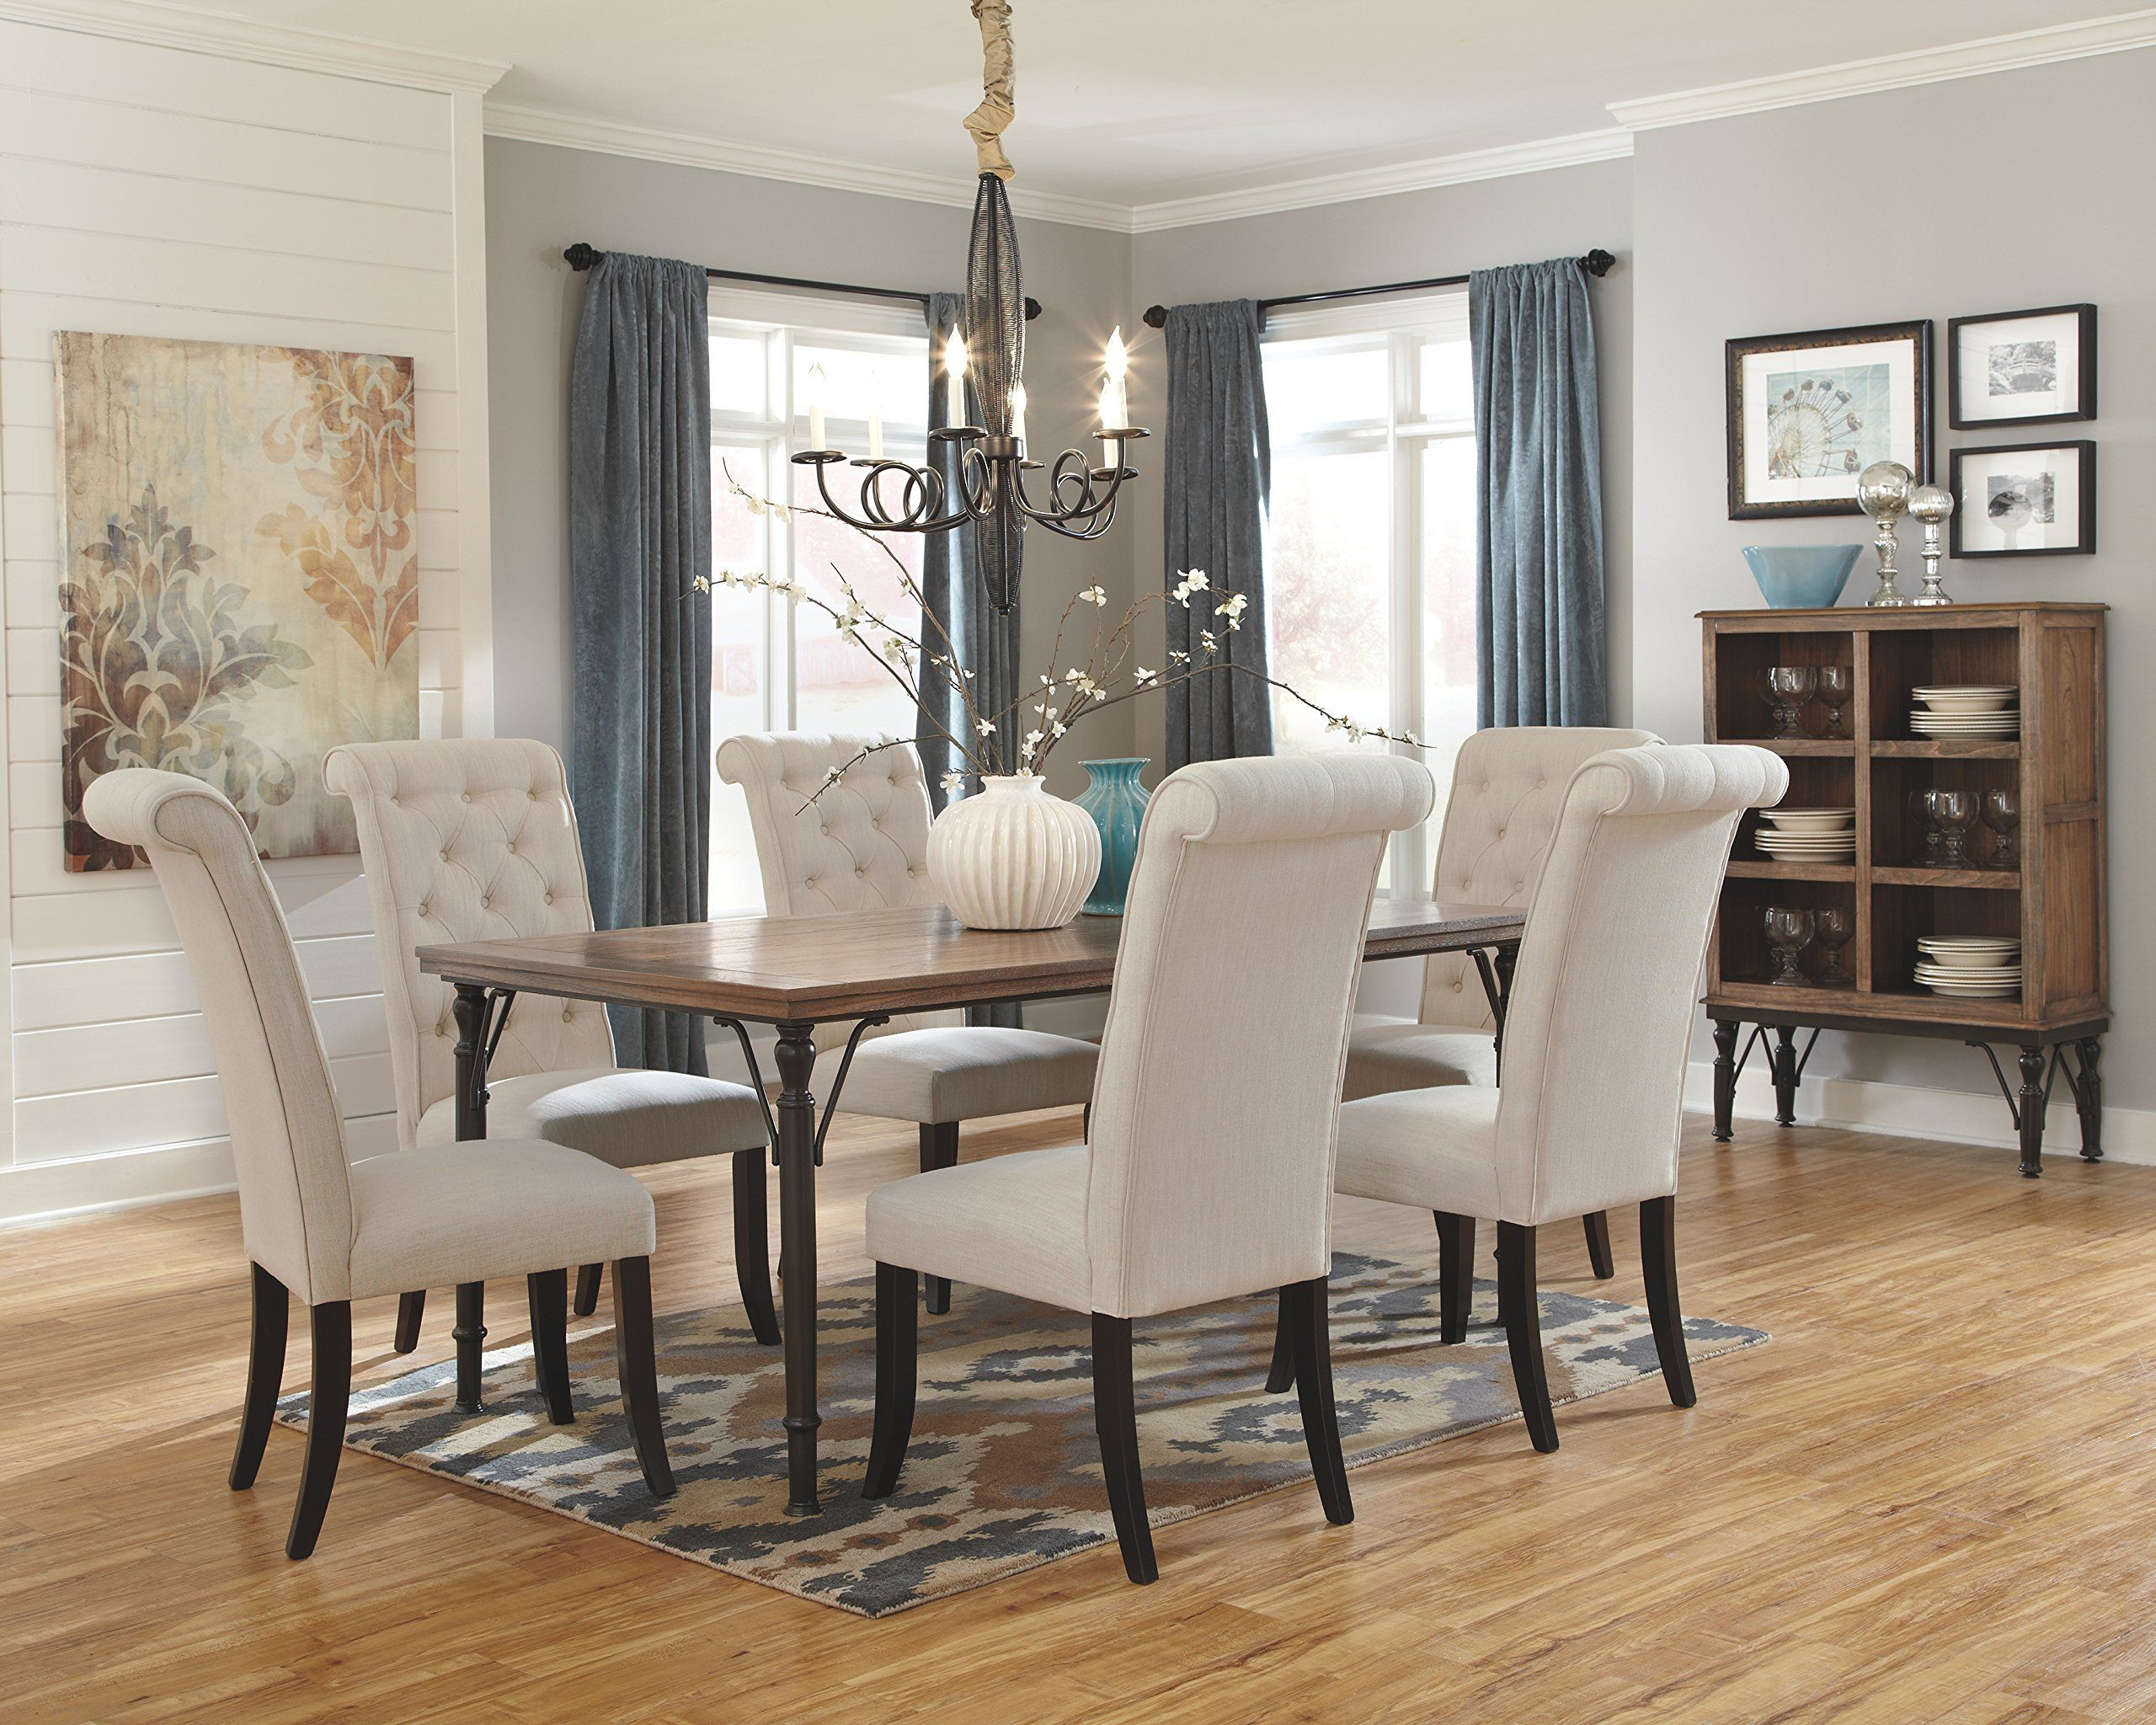 Ashley Furniture Signature Design Tripton Dining Room Side Chair Set